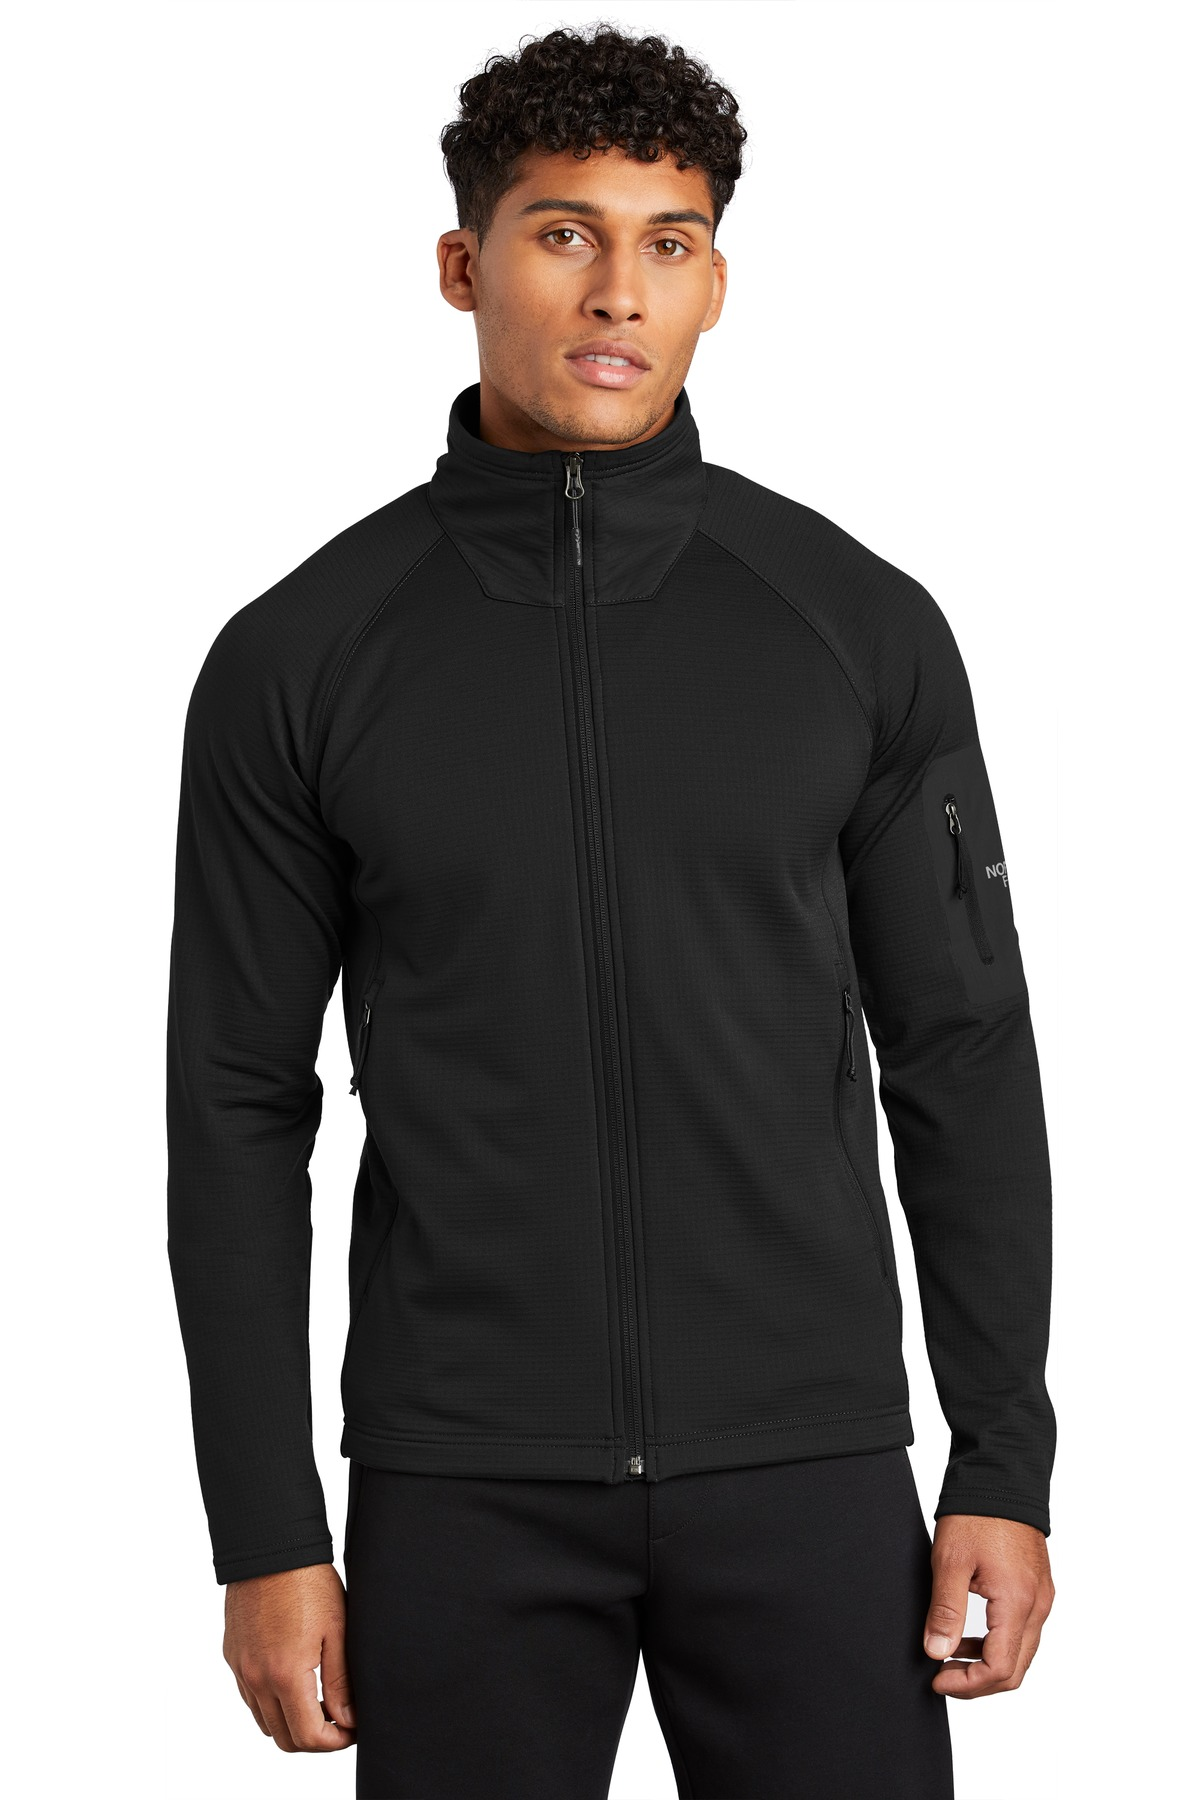 The North Face  ®  Mountain Peaks Full-Zip Fleece Jacket NF0A47FD - TNF Black